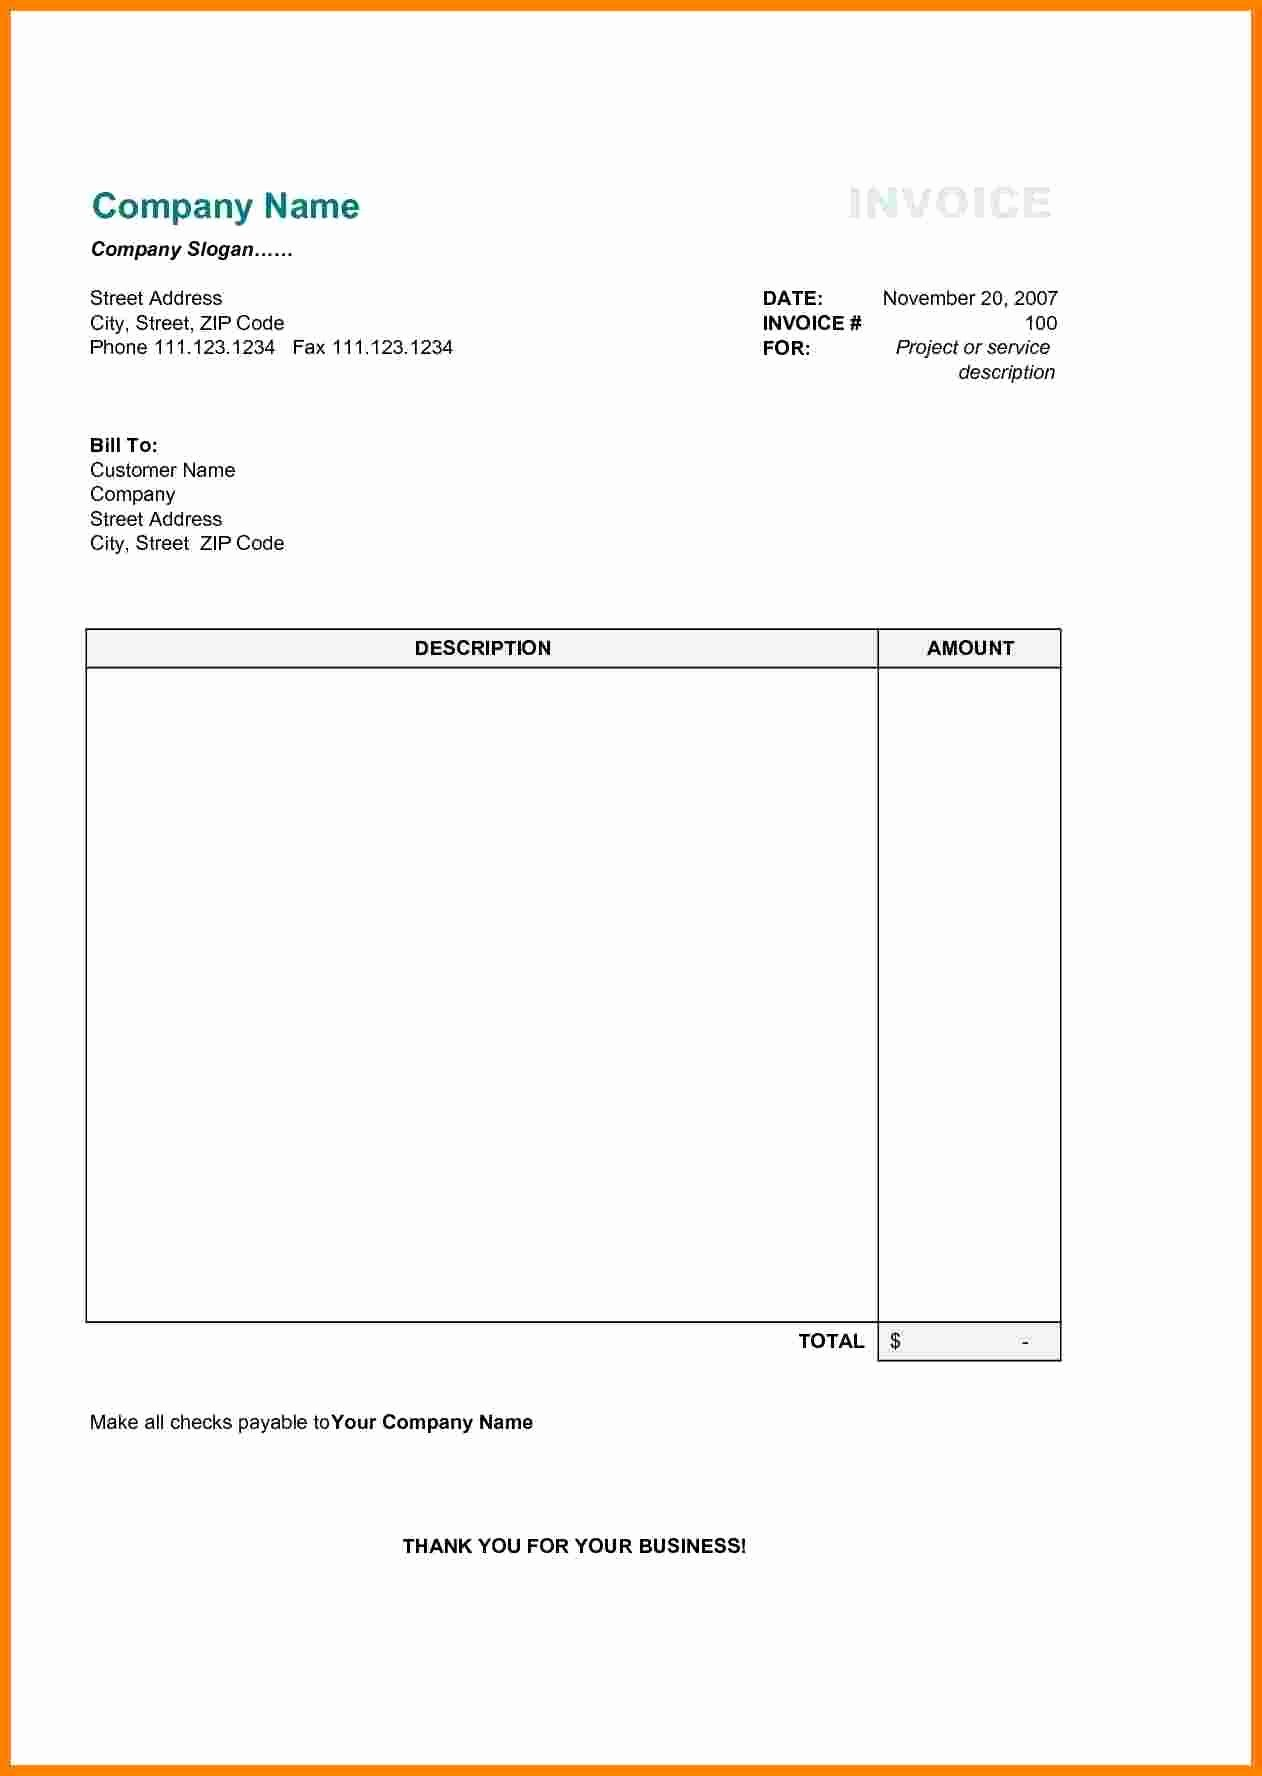 Invoice Template Word 2010 Awesome 6 Simple Invoice Template Word